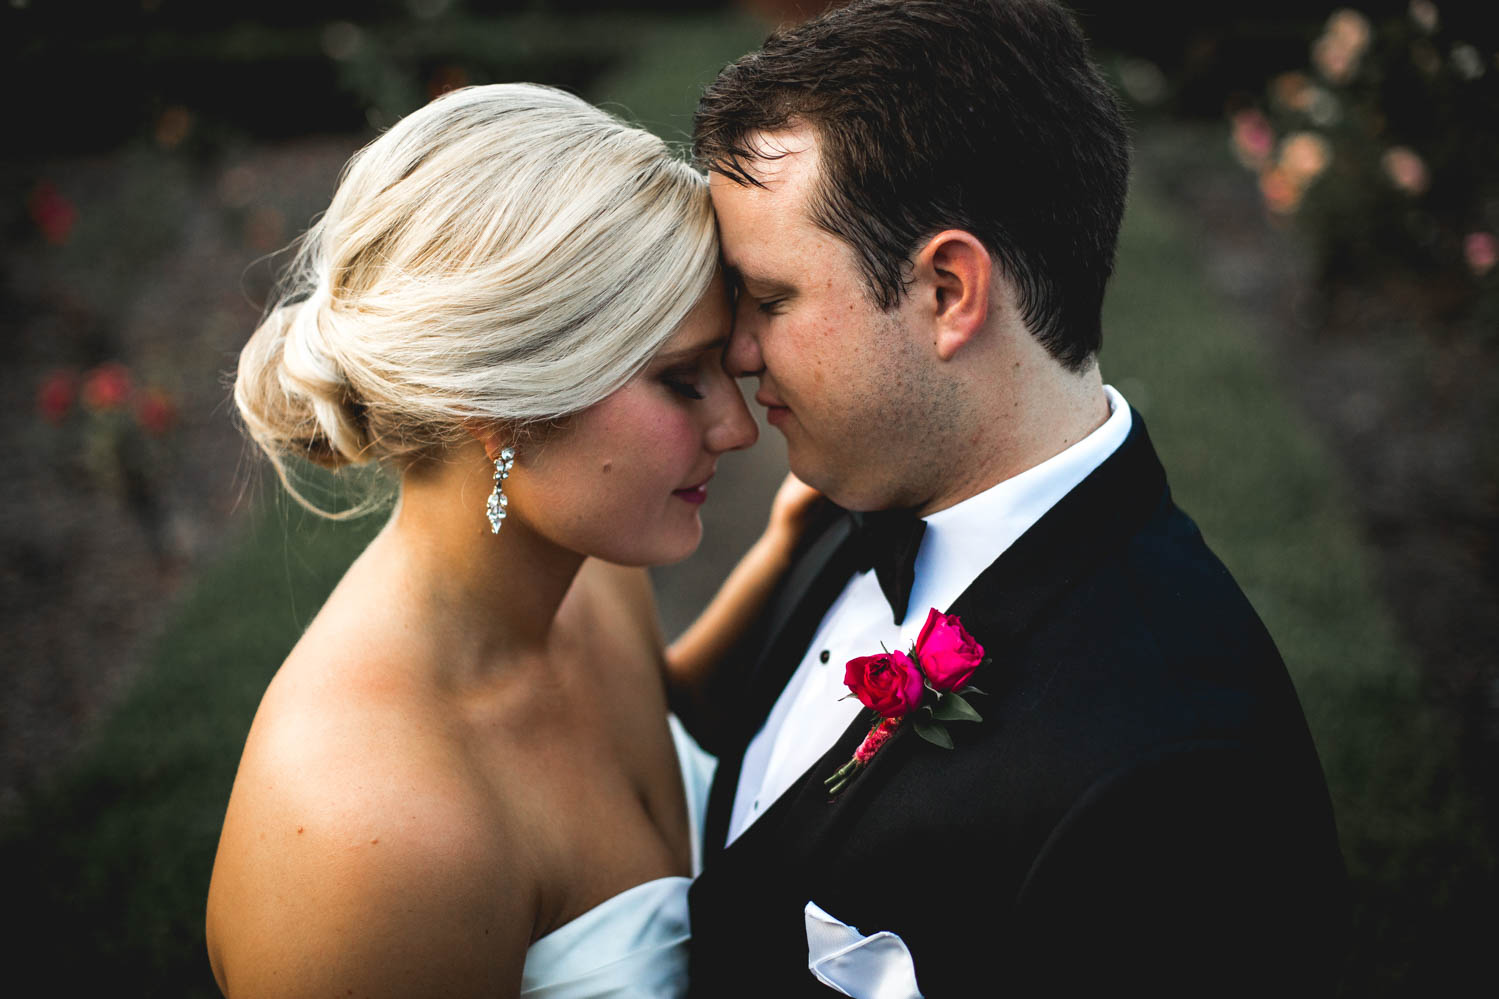 Photo by Daniel K. Photography. One of my favorite wedding photos I captured in 2017. This photo was taken during Kinsey & Bebo's wedding  at Rye Patch Park, in Aiken, South Carolina.